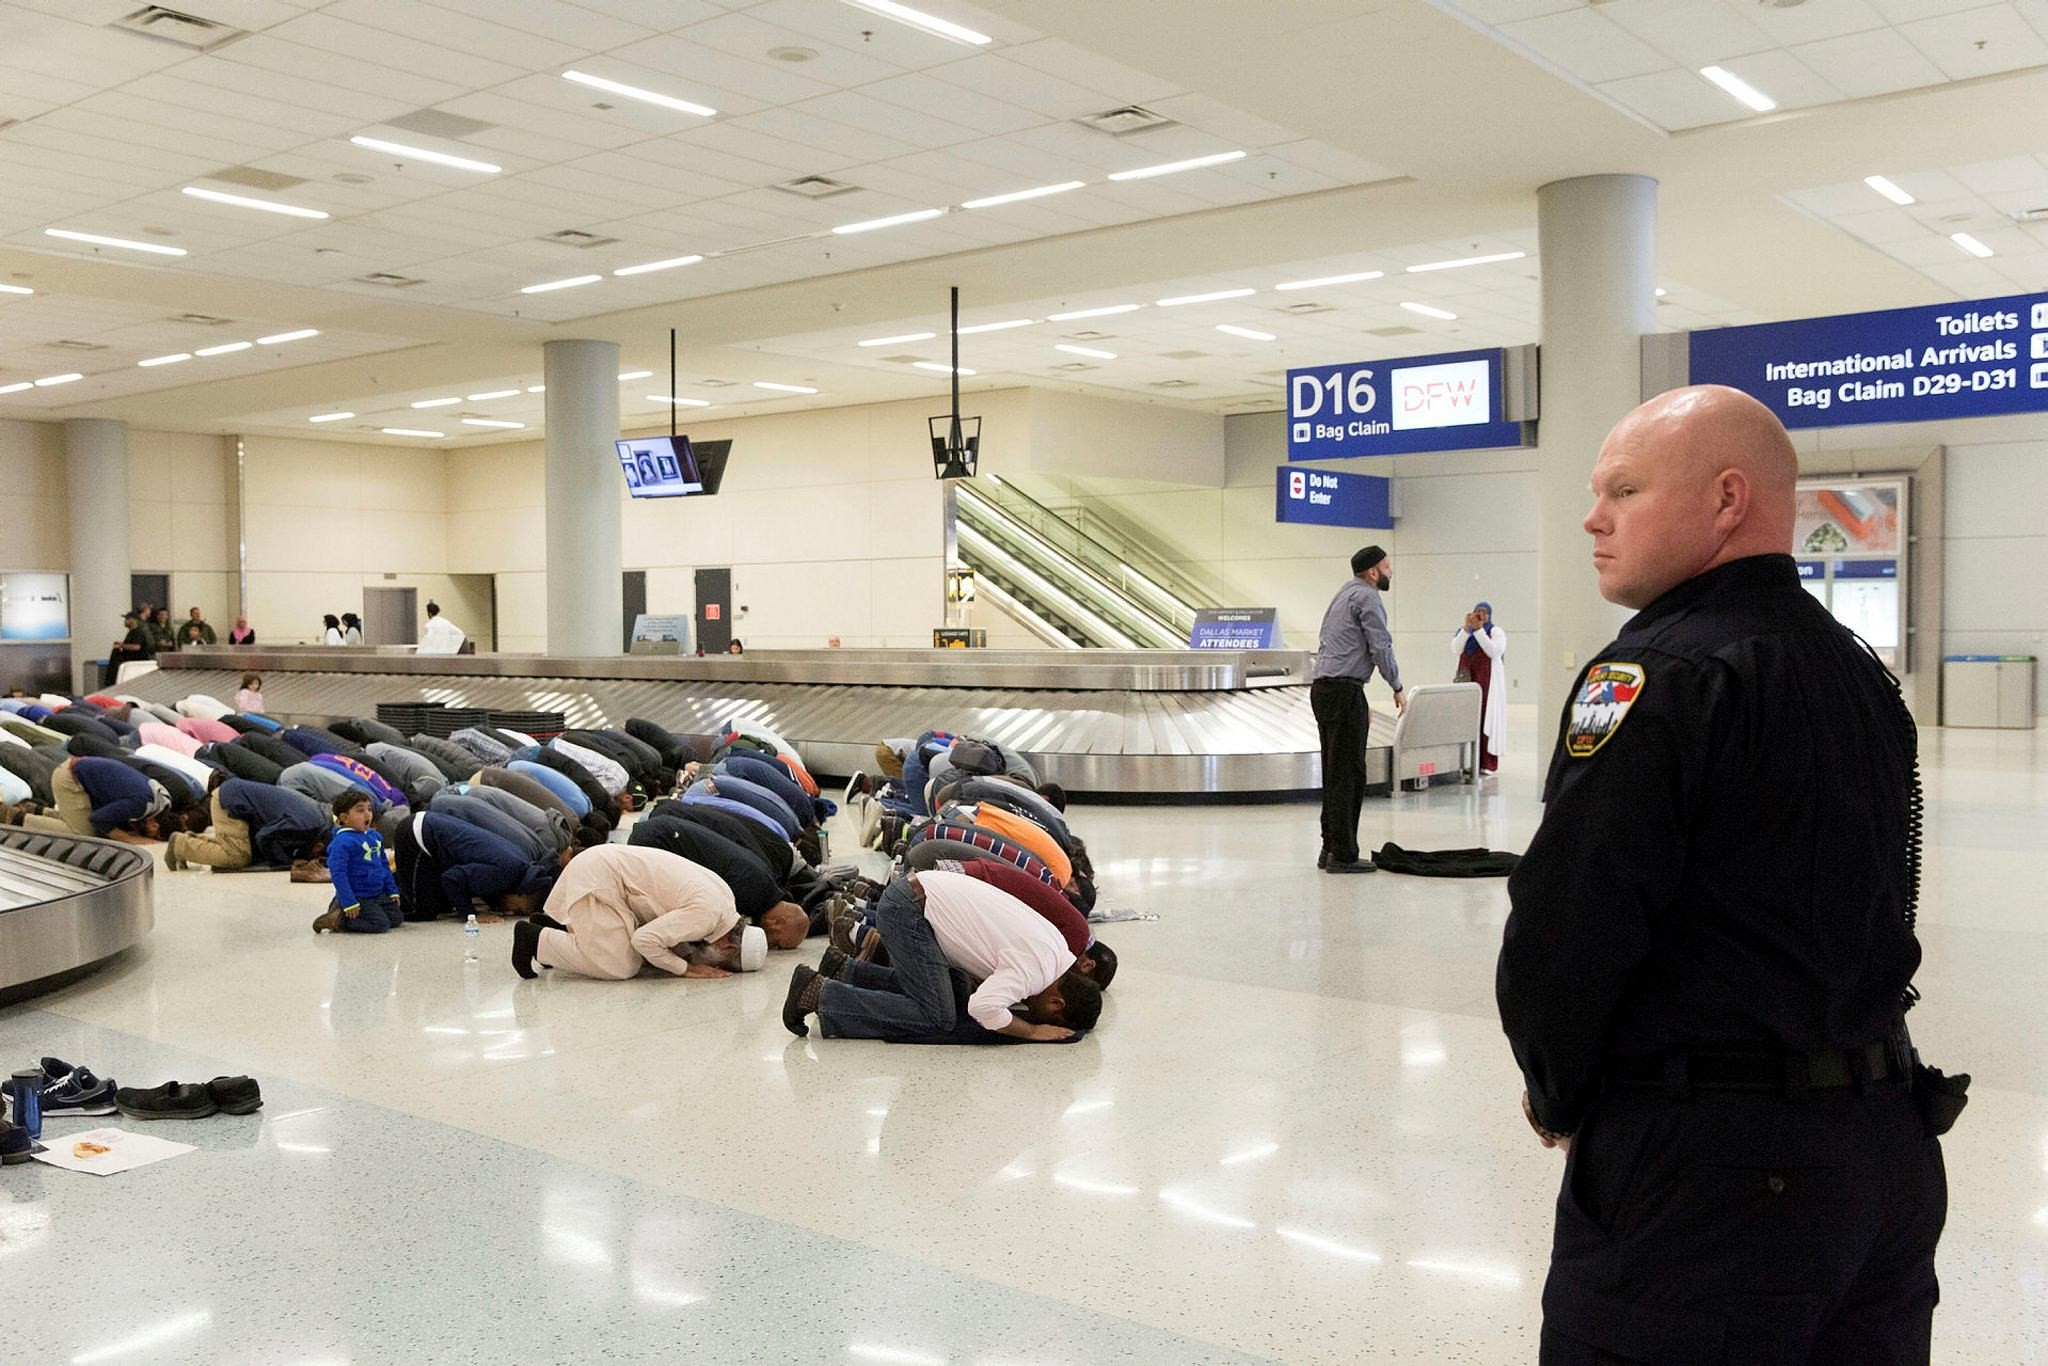 People gather to pray in baggage claim during a protest against the travel ban imposed by U.S. President Donald Trump's executive order, at Dallas/Fort Worth International Airport in Dallas, Texas, U.S. on January 29, 2017. (Reuters Photo)